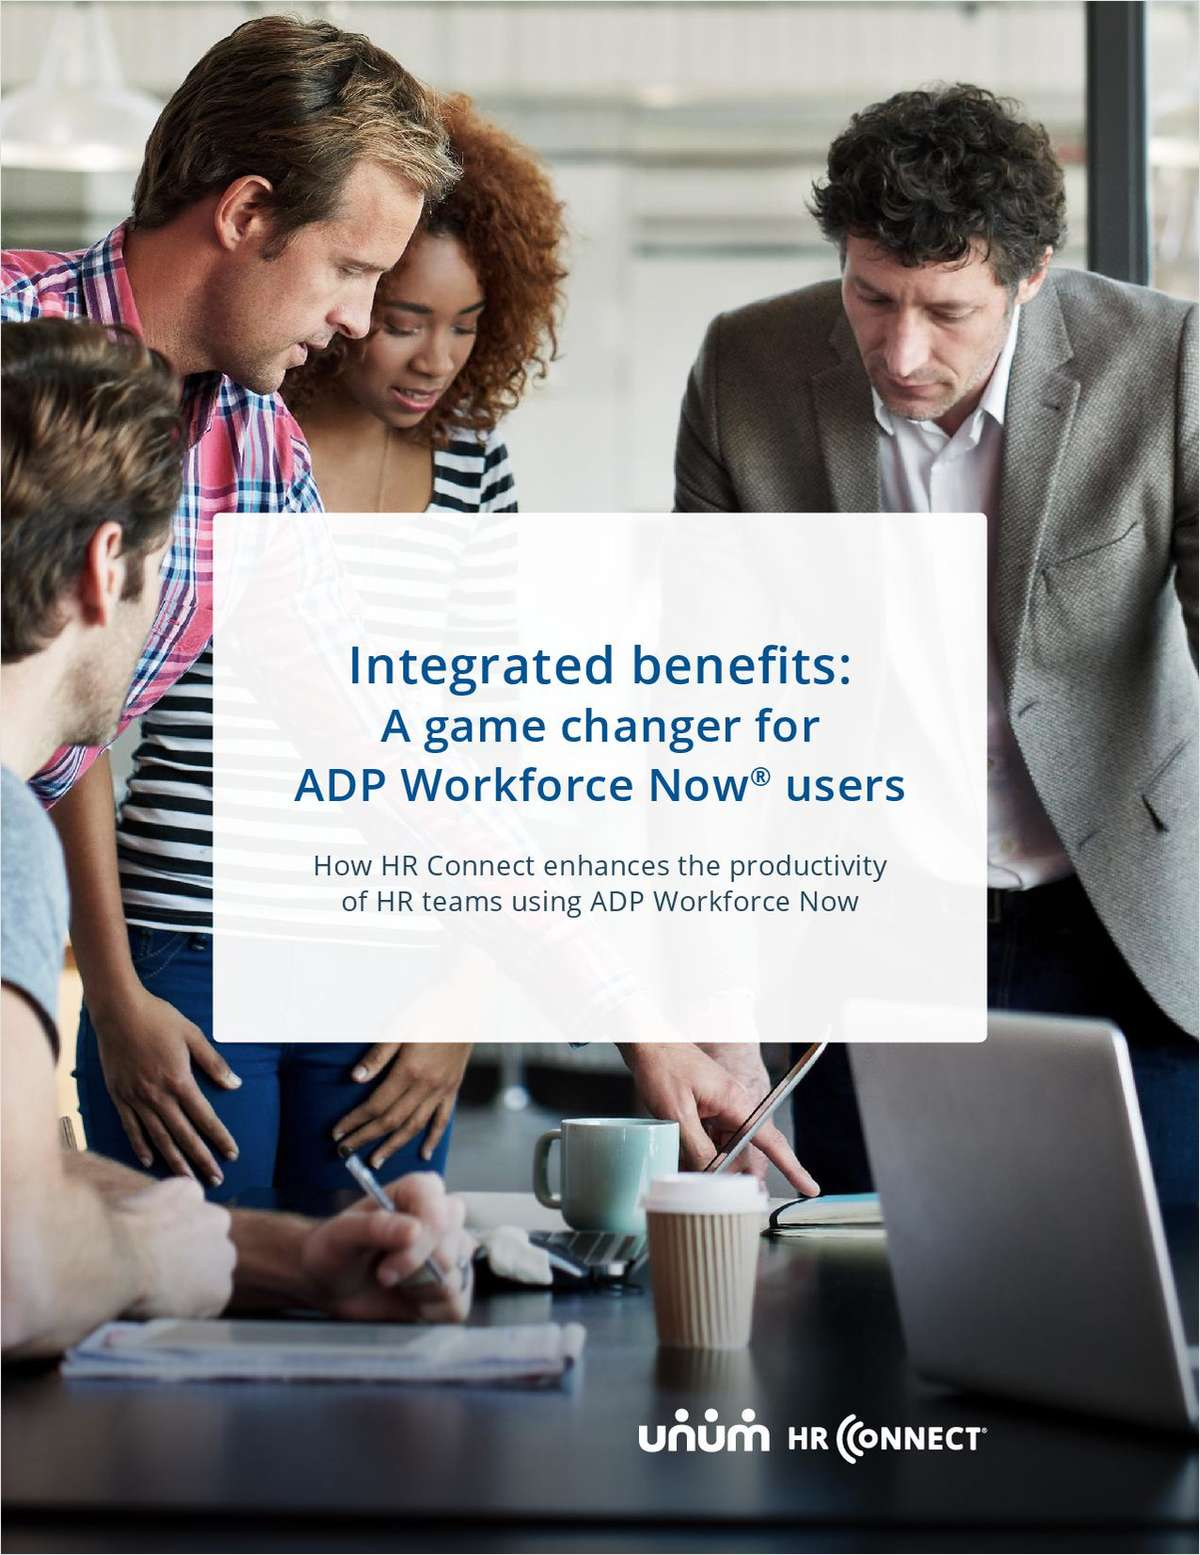 HR Guide to Integrating Benefits with Unum and ADP Workforce Now®